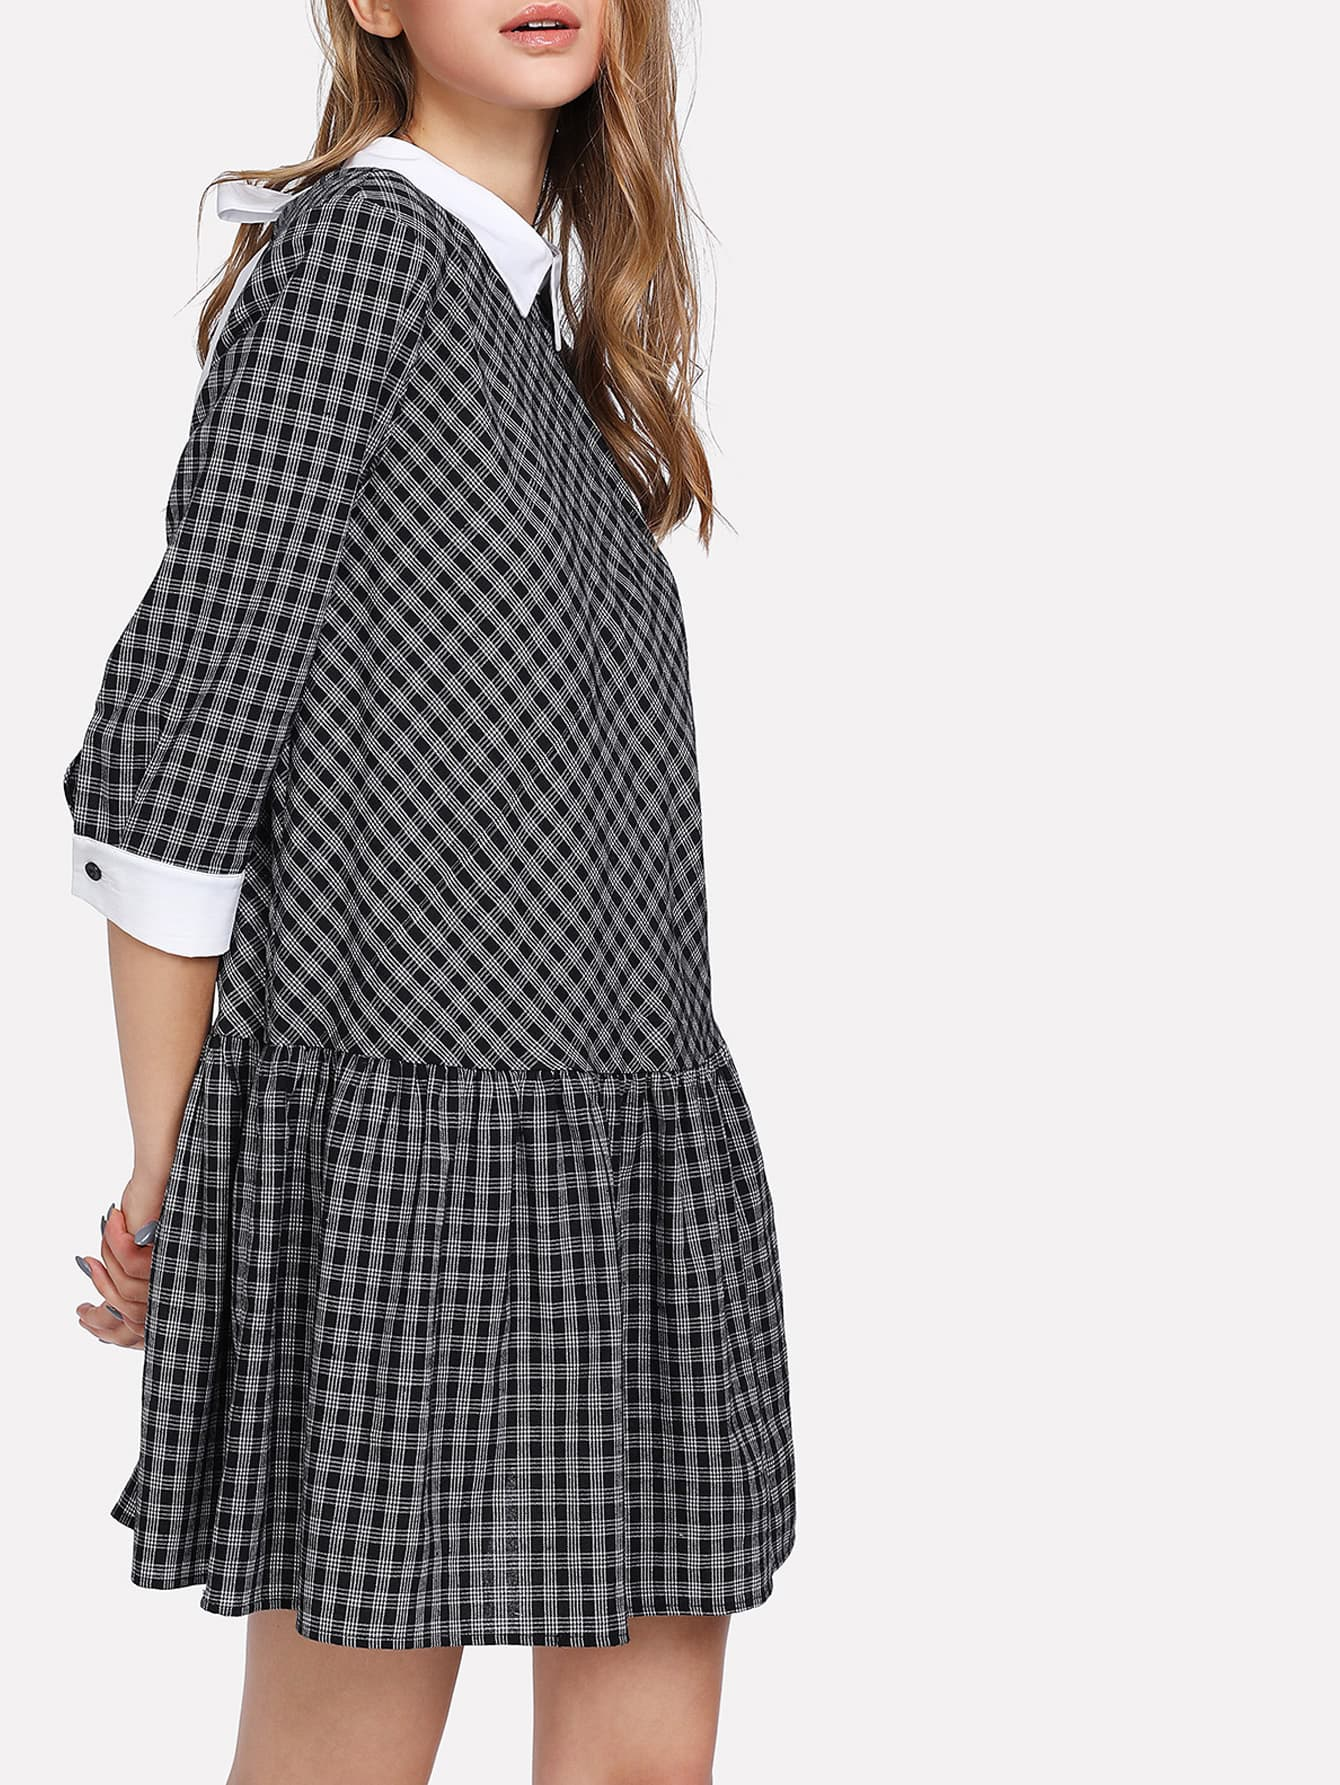 Contrast Cuff And Collar Bow Tied Dress contrast collar bow tied detail striped dress